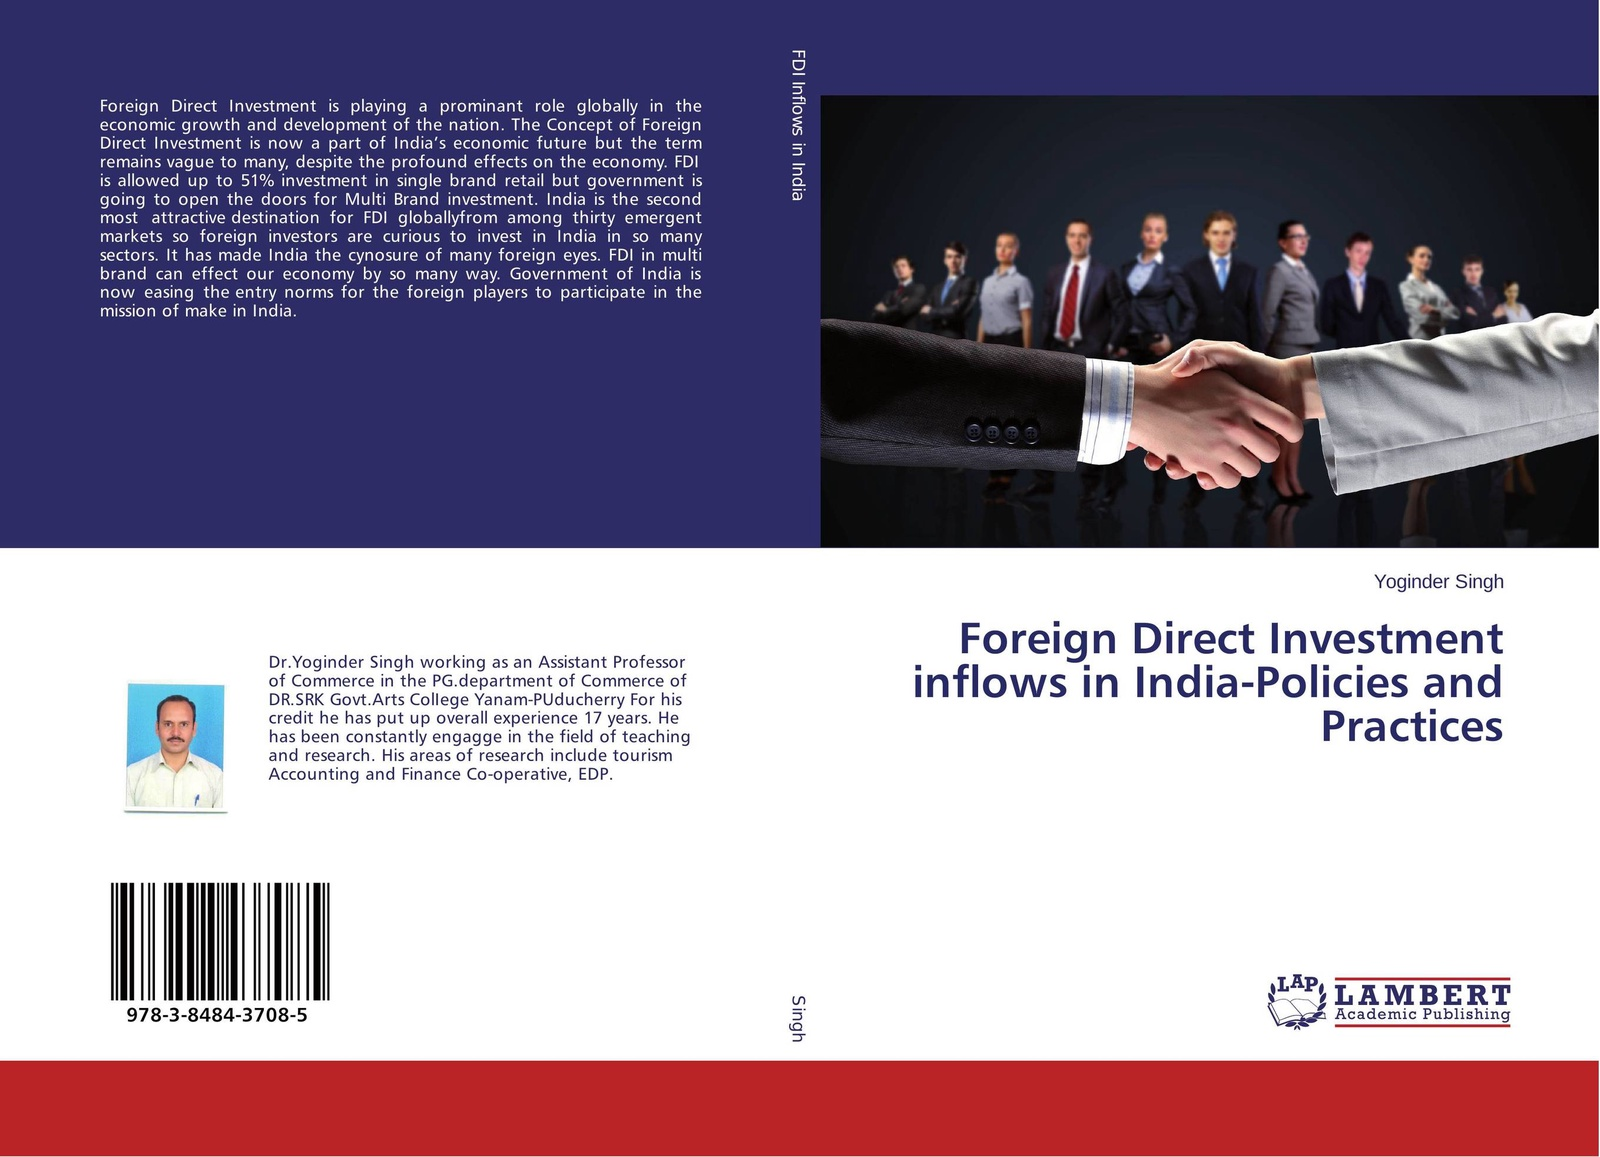 Yoginder Singh Foreign Direct Investment inflows in India-Policies and Practices andreas epperlein foreign direct investment in ireland under consideration of the financial services sector in particular